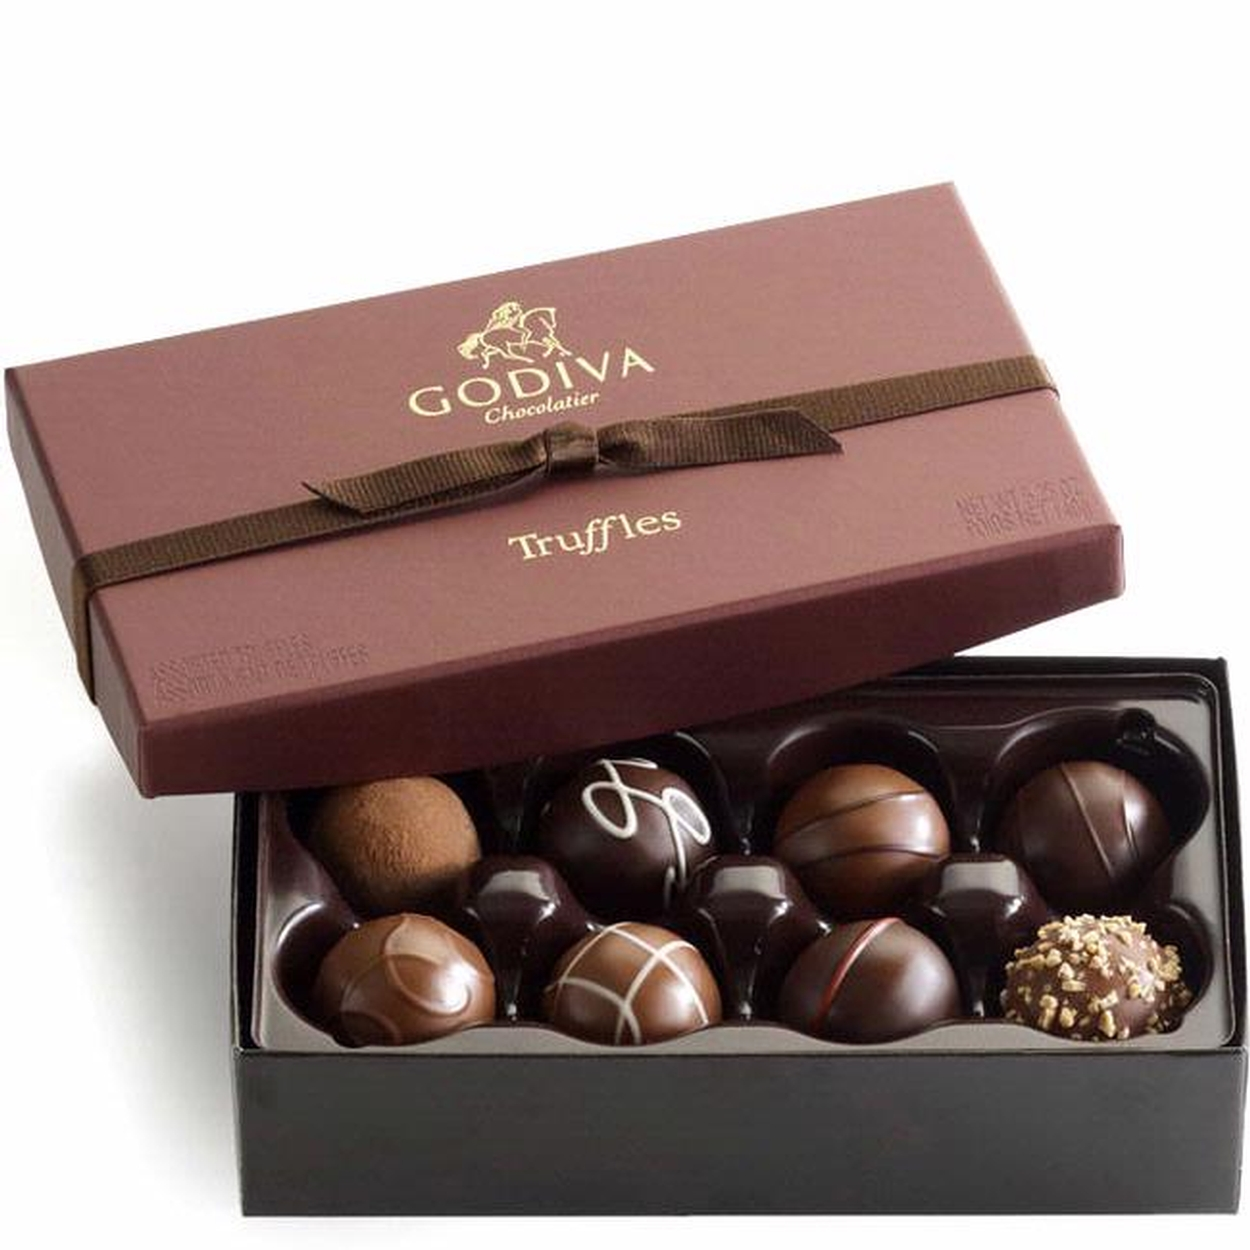 Godiva Signature Chocolate Truffles Gift Box - 8 Pc. • Chocolate ...